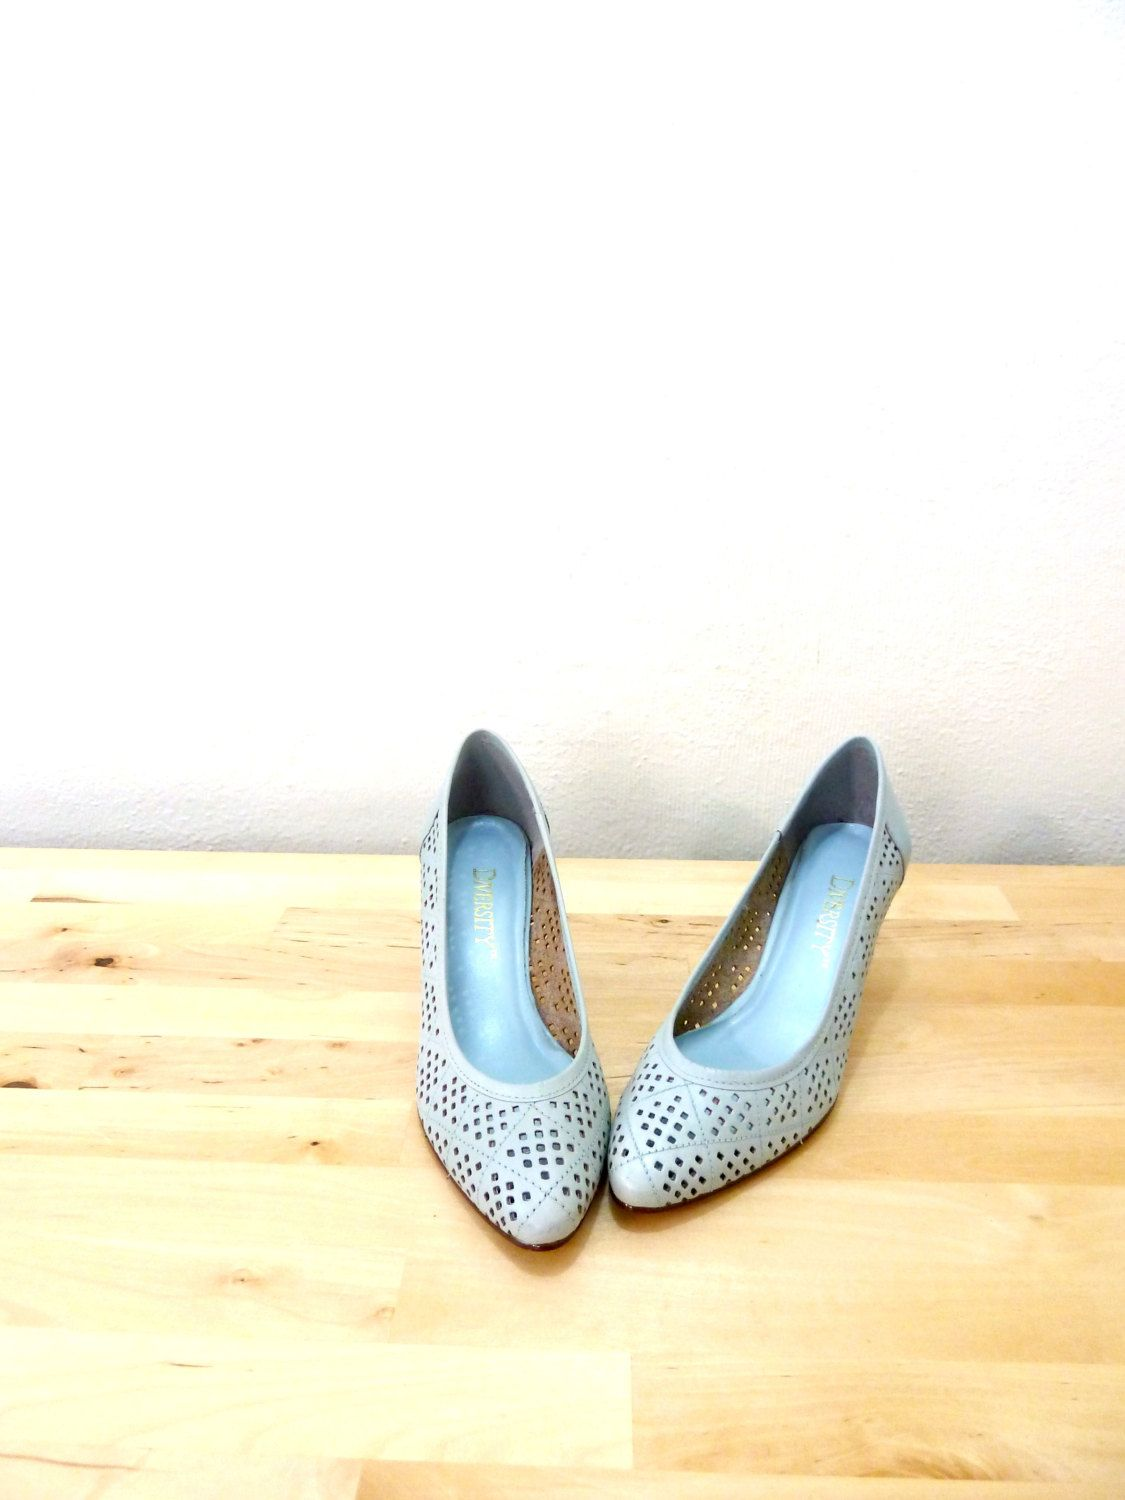 Vintage Light Blue Heels Cutout Pumps Kitten Leather Grey Something Bridal Shoes USD By VintageEdition